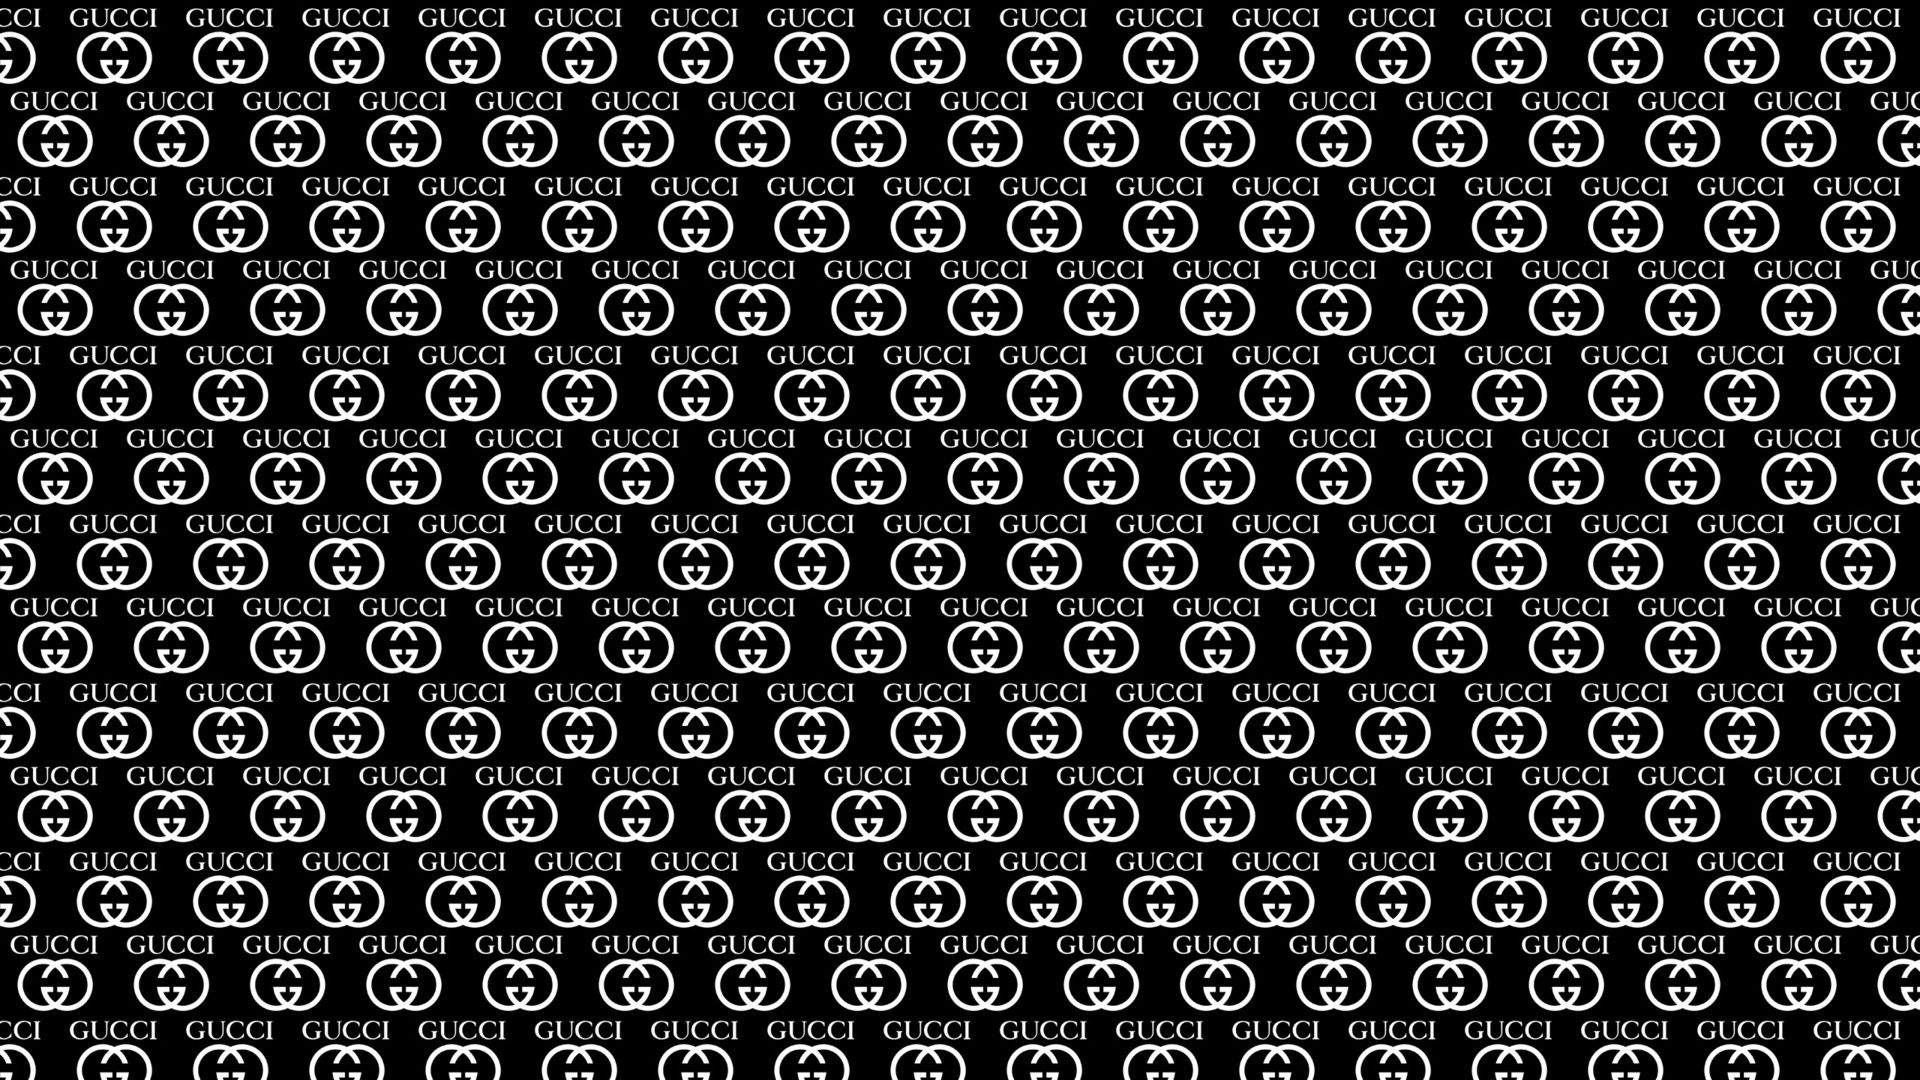 Gucci Hd Wallpaper Background Image 1920x1080 Id 1019667 Wallpaper Abyss